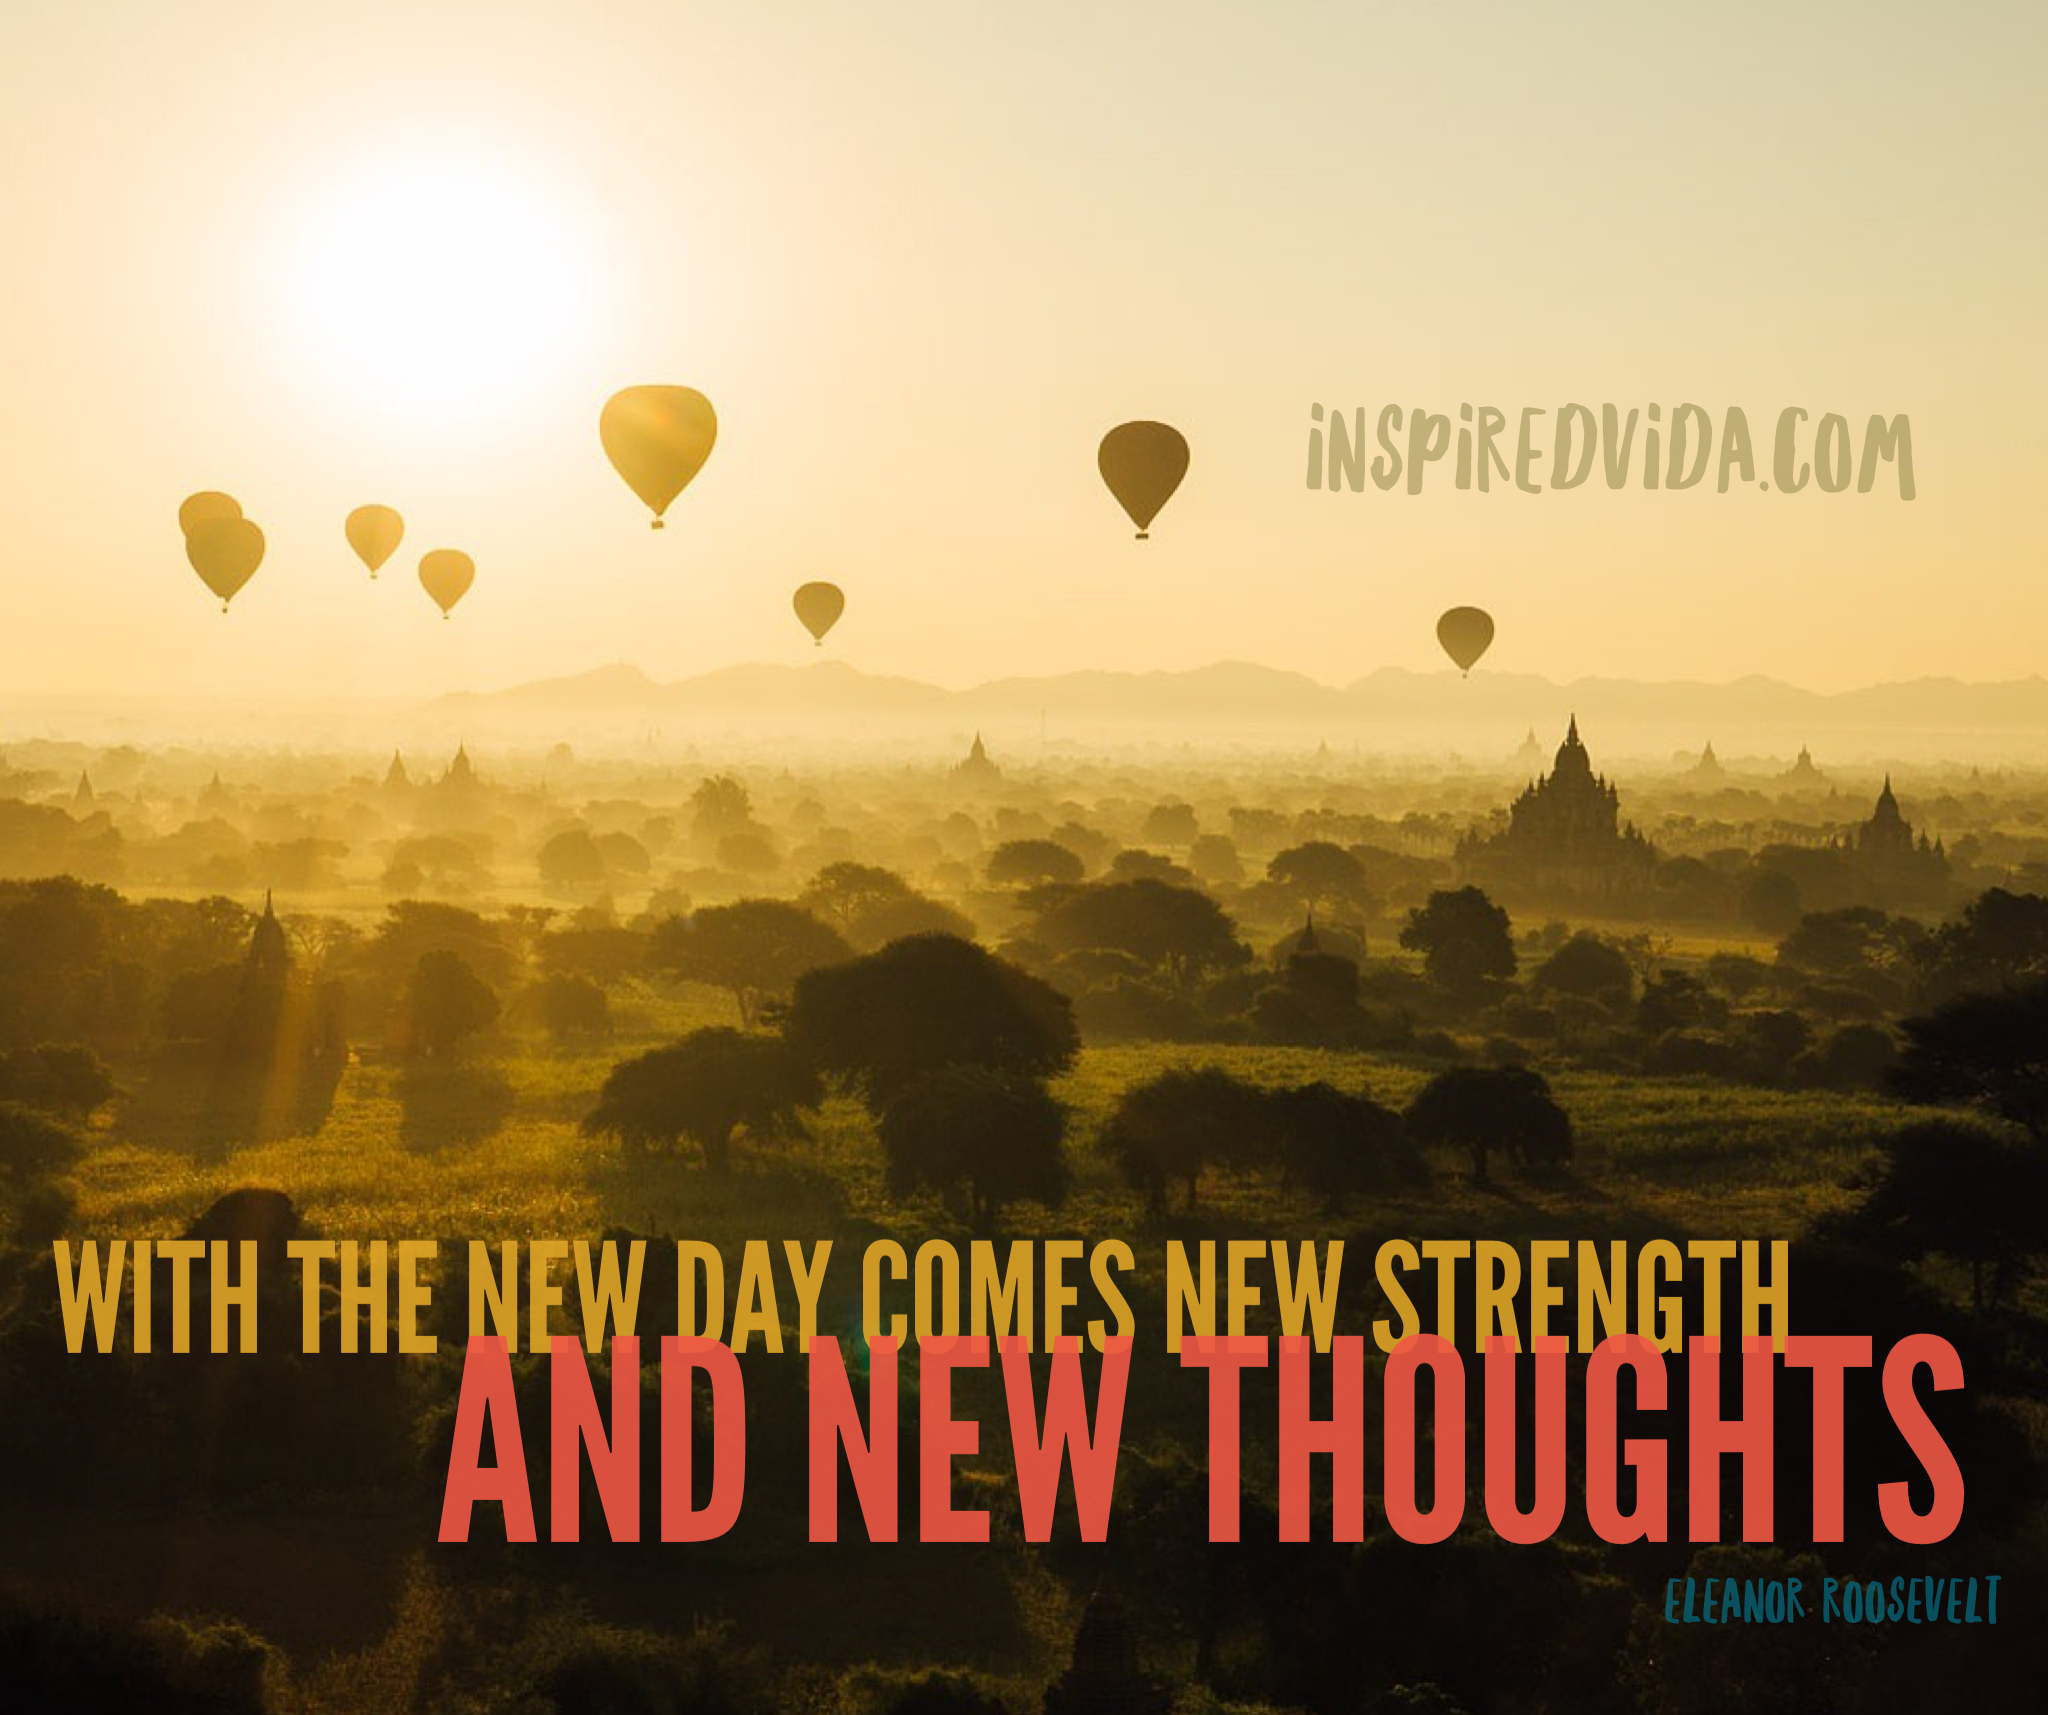 new strength, new ideas quote